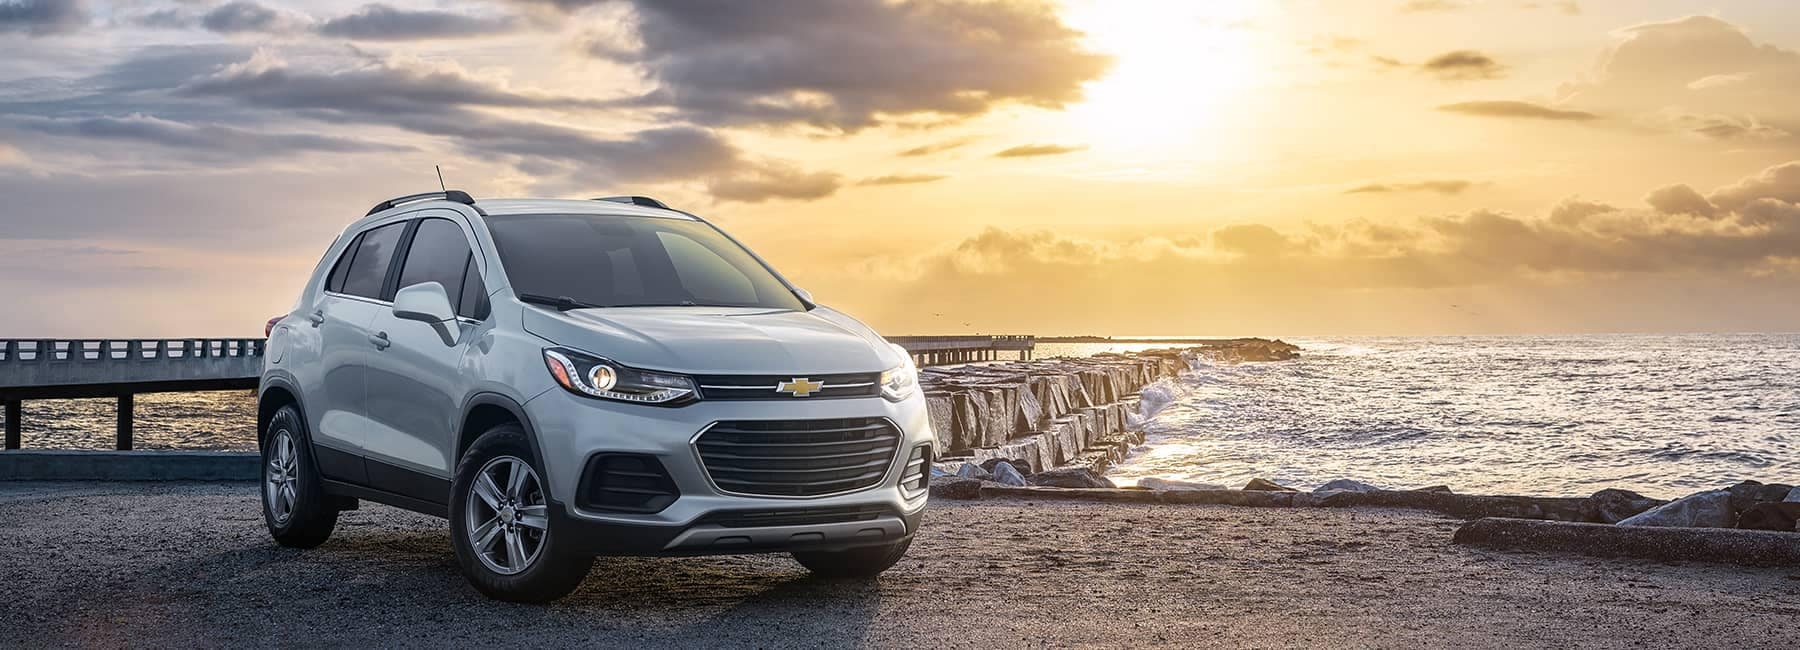 White 2021 Chevrolet Trax parked in front of an ocean pier_mobile